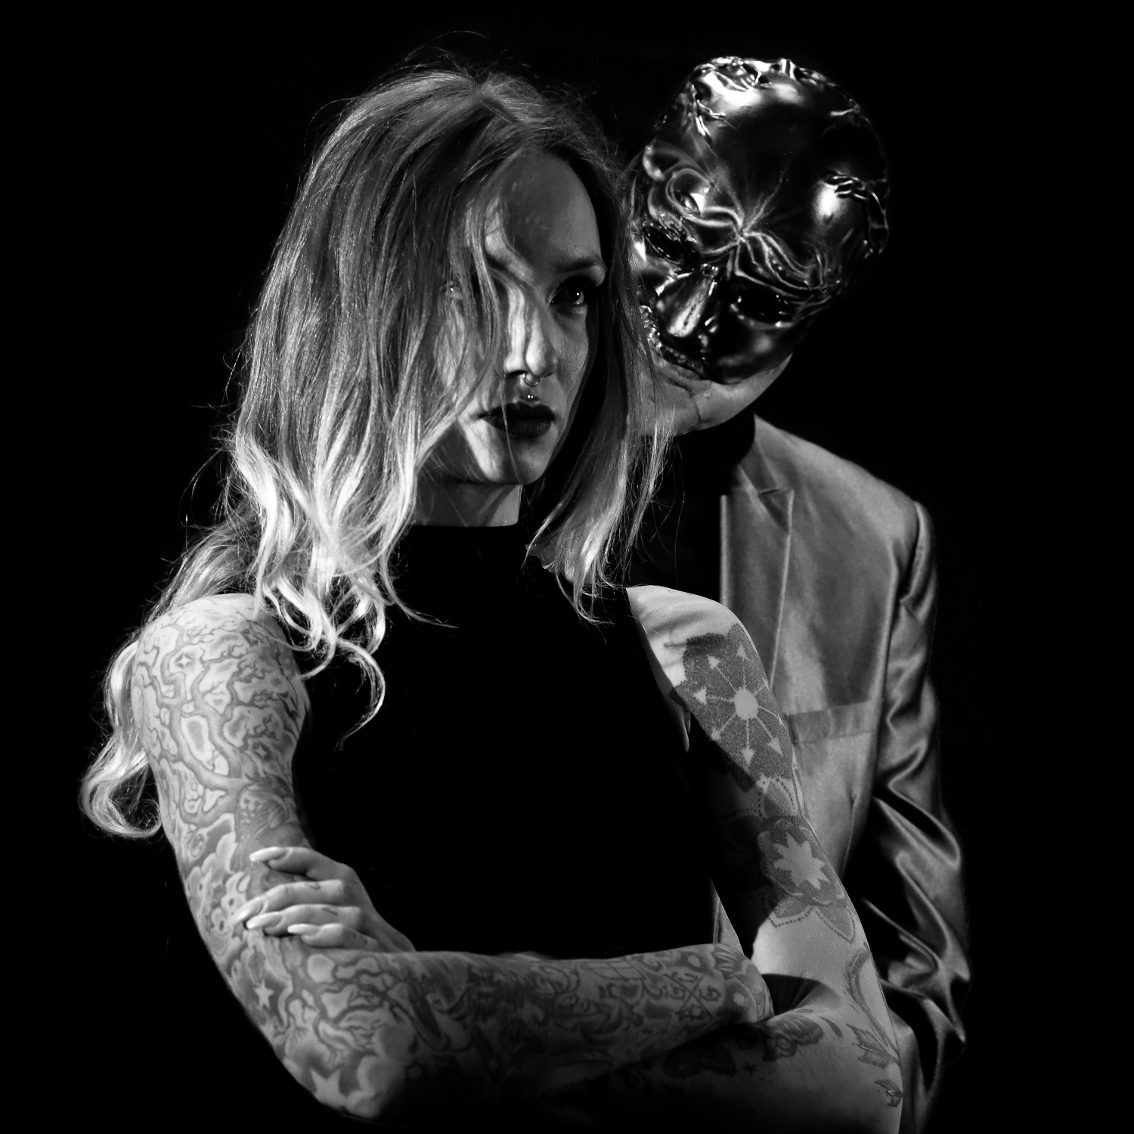 Dirty Vocoder (project by Escape With Romeo frontman) offers brand new video and single for 'Cocaine Dawn'